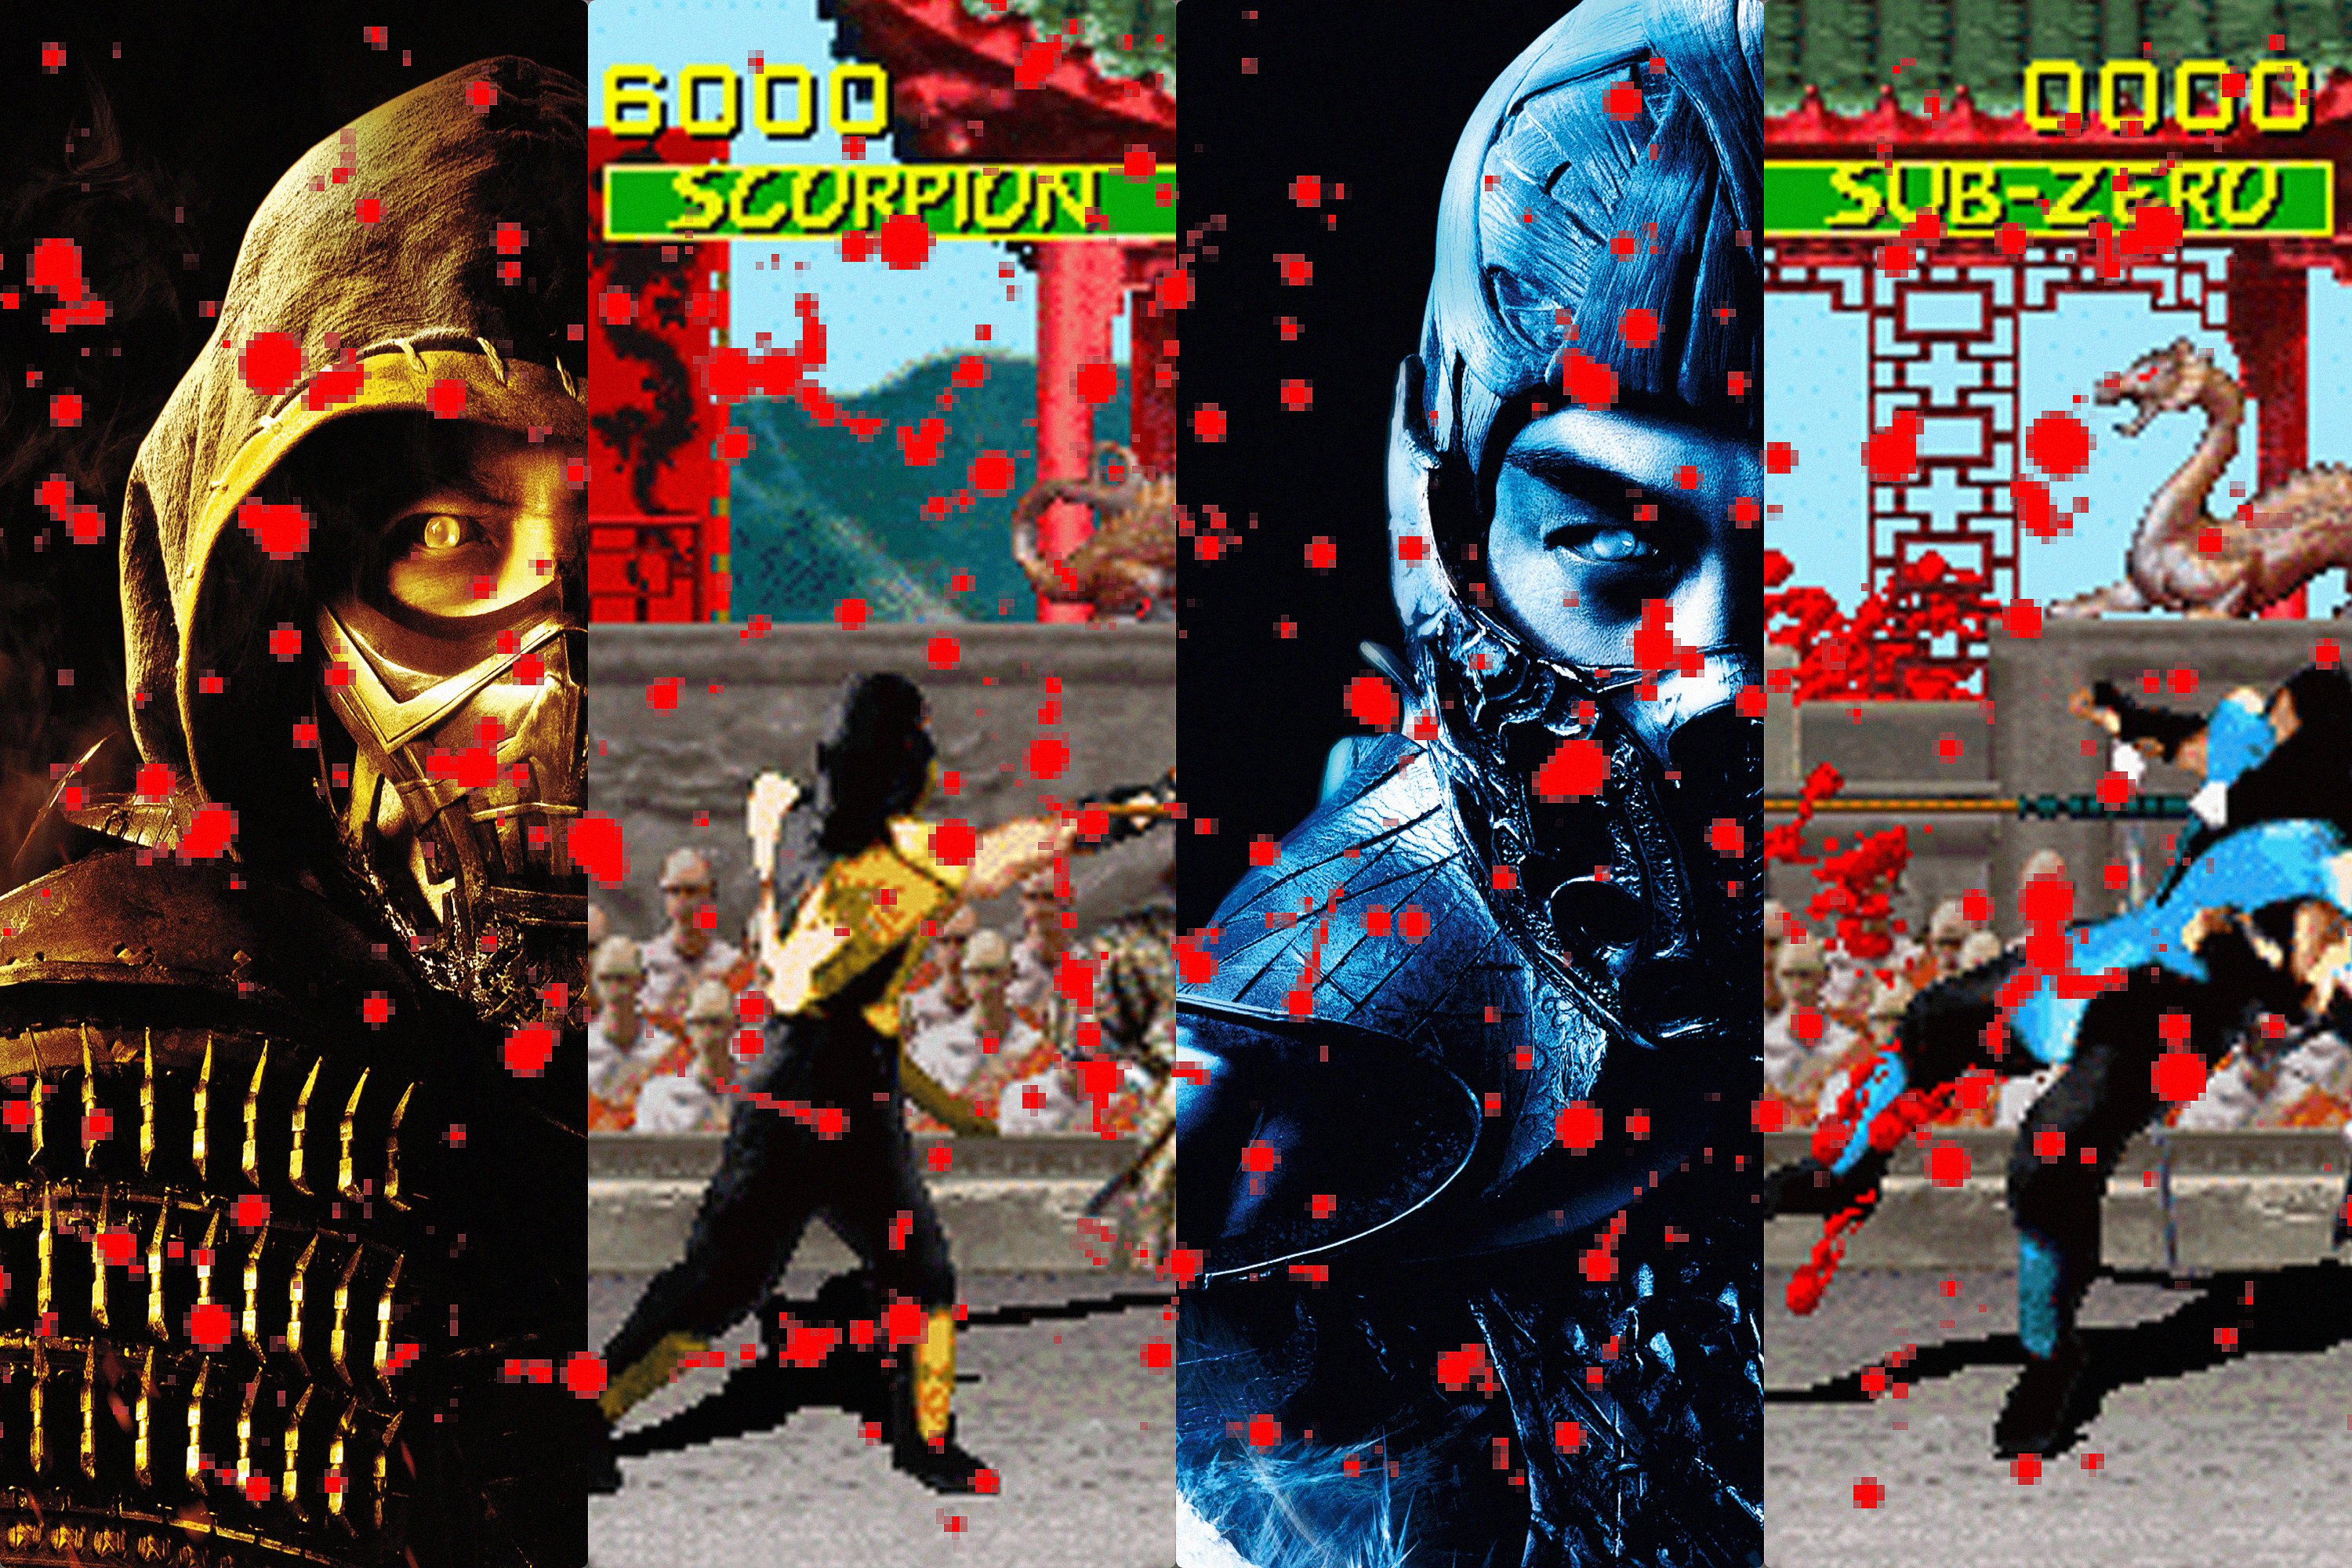 Graphic with images of the Scorpion and Sub-Zero characters from both the Mortal Kombat movie and the game.